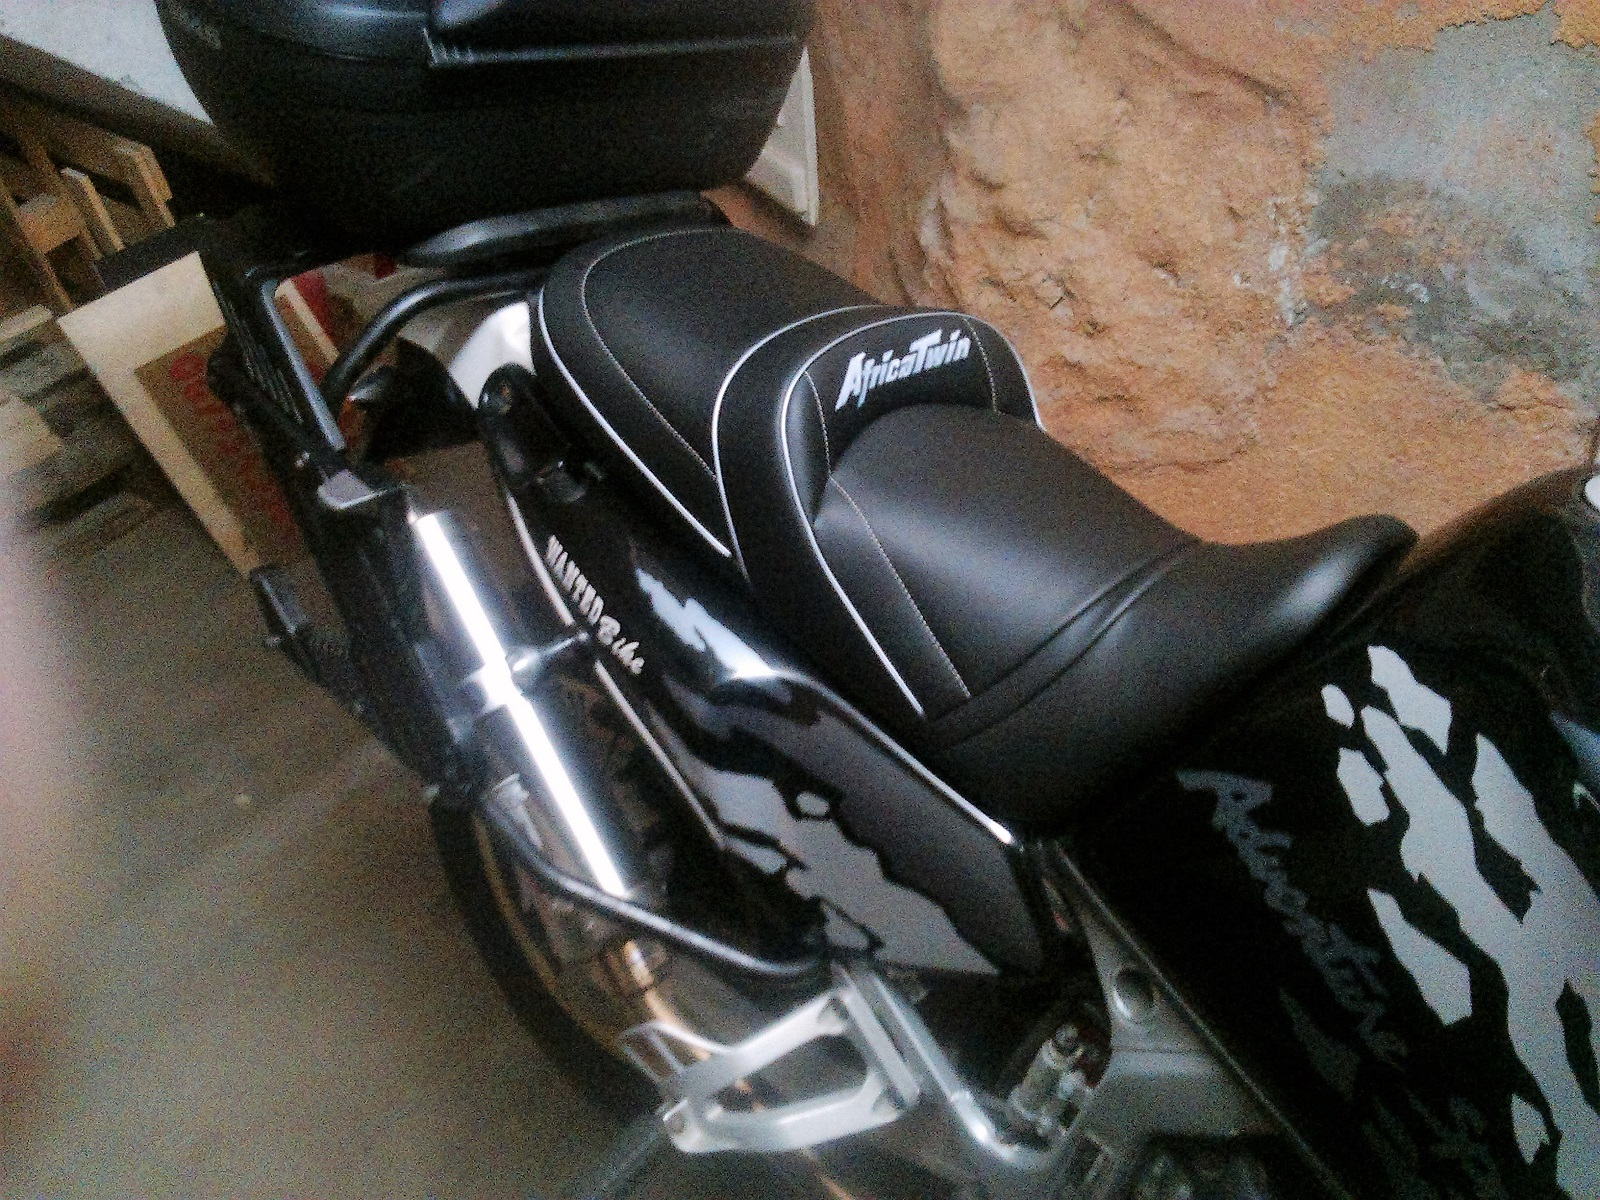 Honda Africa Twin Xrv 750 1993 2002 Deluxe Seats Petrol Tank Covers Tank Bags Rates For France